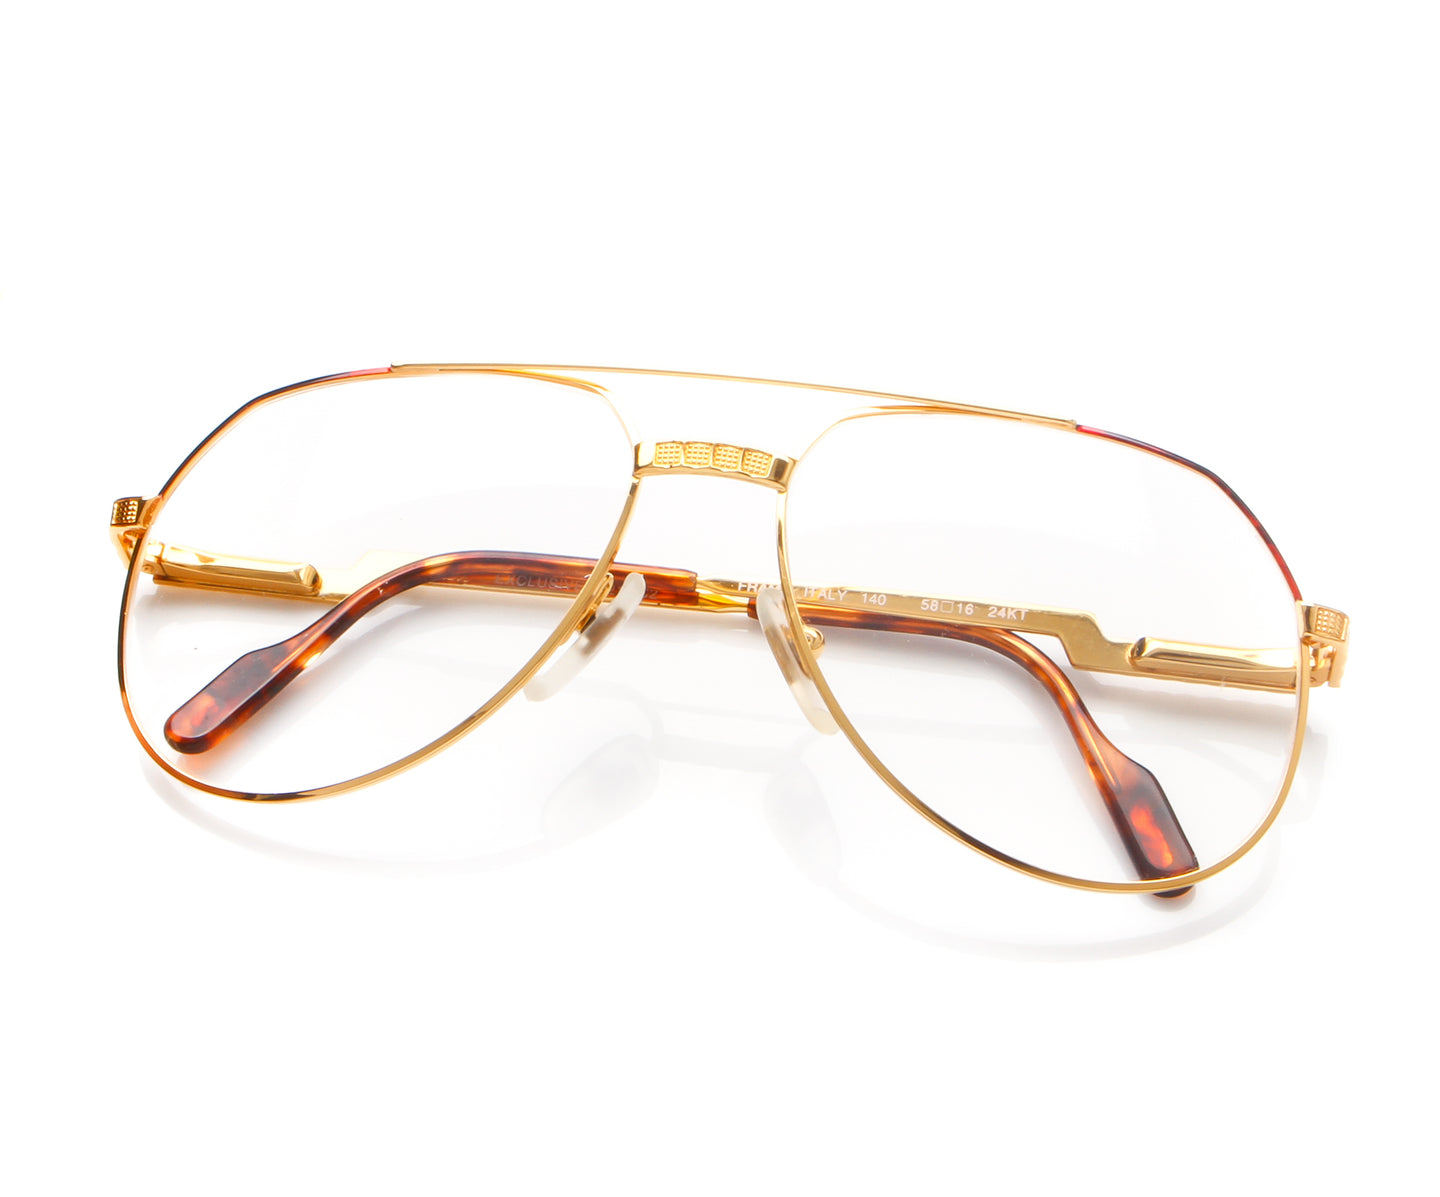 Vintage Hilton Exclusive 021 2 24KT Thumb, Hilton , glasses frames, eyeglasses online, eyeglass frames, mens glasses, womens glasses, buy glasses online, designer eyeglasses, vintage sunglasses, retro sunglasses, vintage glasses, sunglass, eyeglass, glasses, lens, vintage frames company, vf